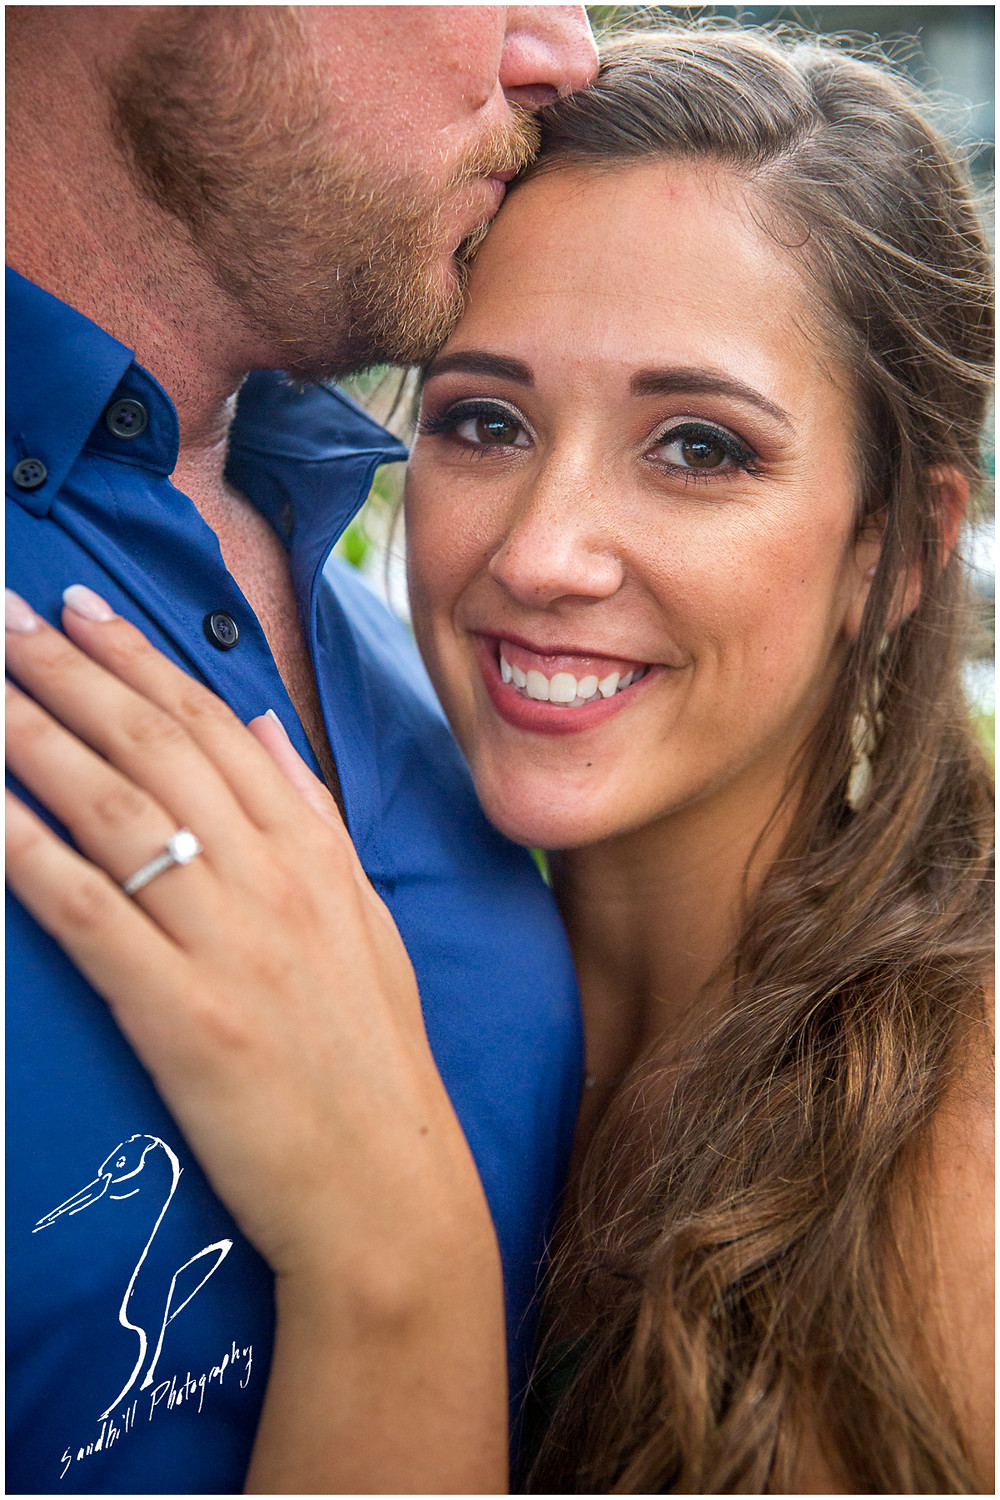 Downtown Bradenton Engagement Photography, a woman smiles at the camera as her fiance kisses her forehead, with her engagement ring in the foreground